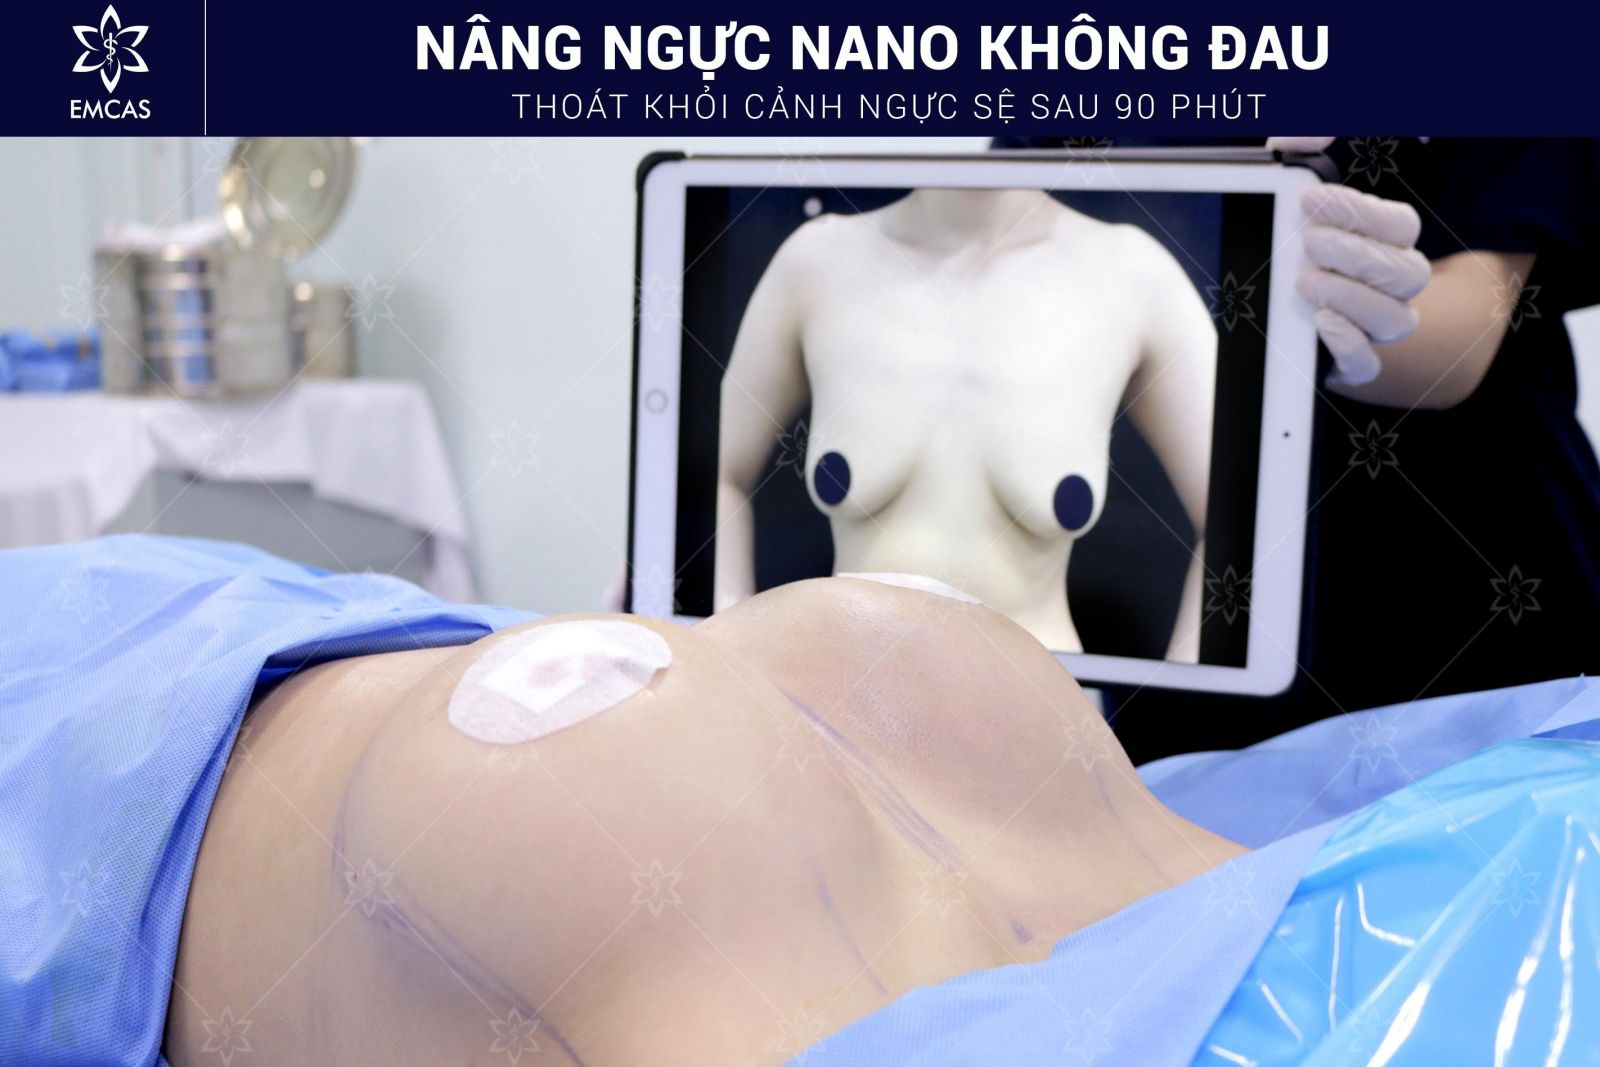 What is sagging breast augmentation, sagging breast augmentation methods, where is sagging breast augmentation is good, what is the best practice for a motor vehicle, methods of a car service, a good start